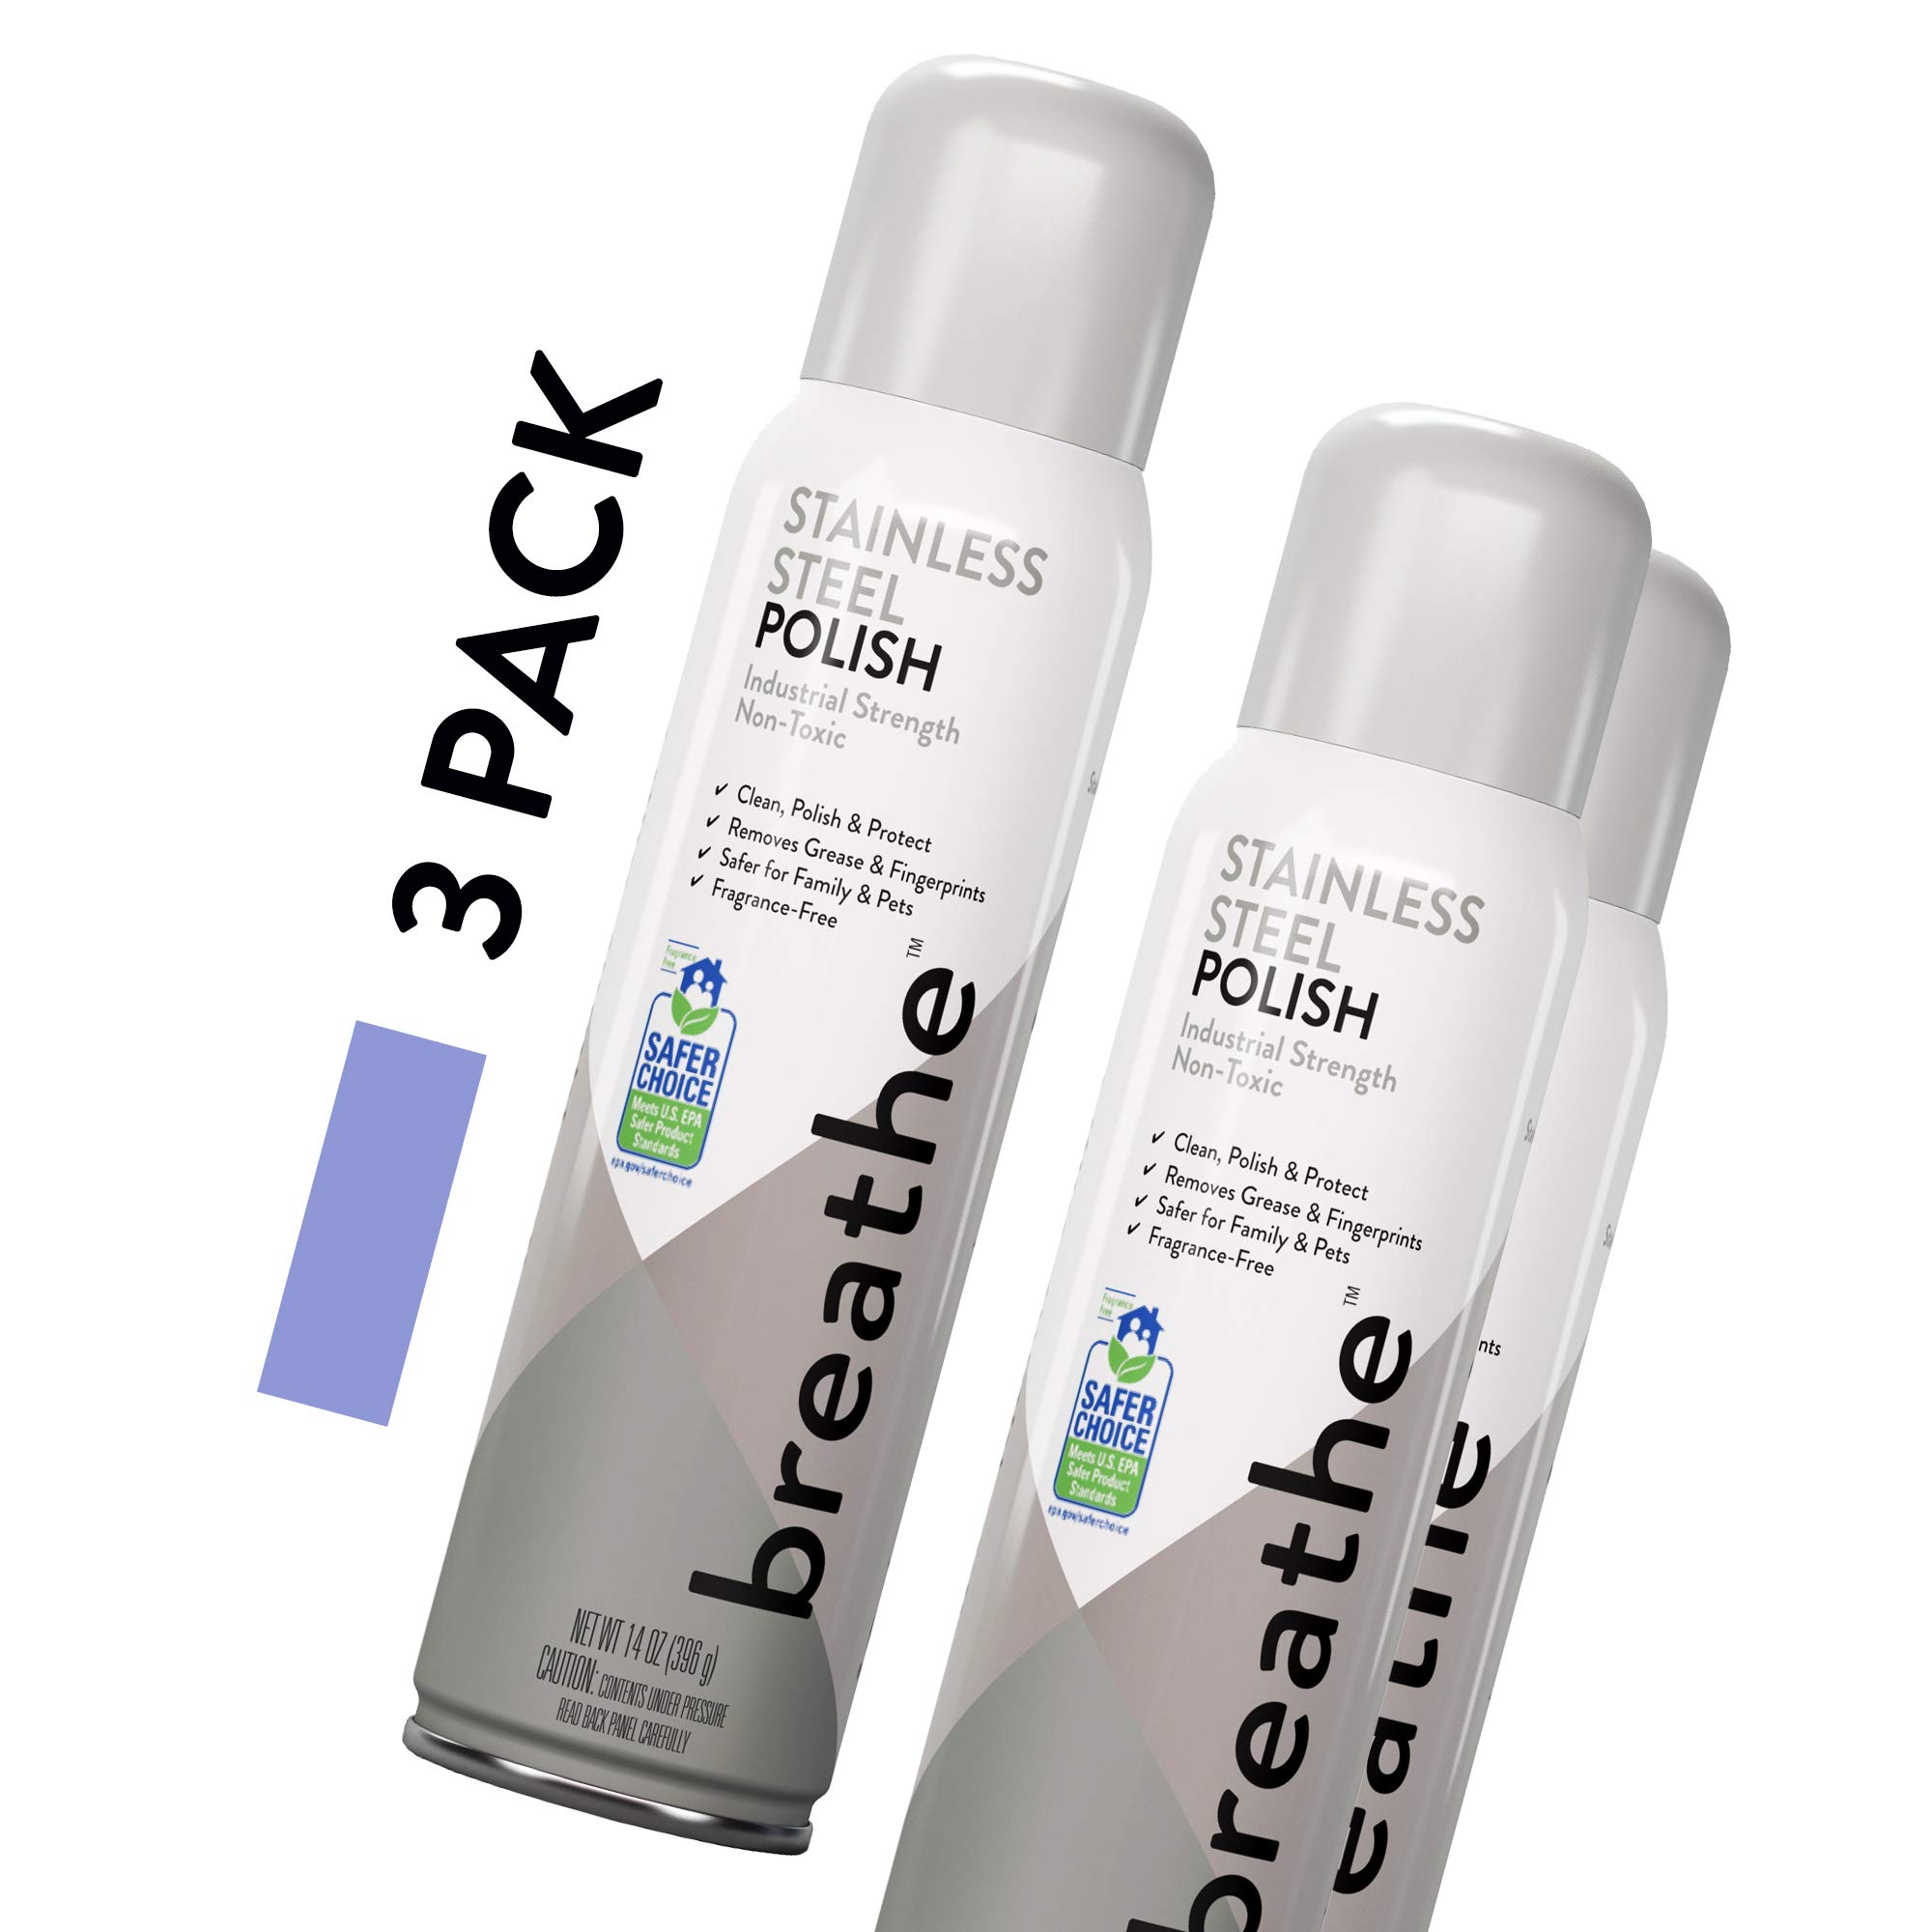 Breathe Industrial Stainless Steel Cleaner That Cleans, Polishes, and Protects - Removes Grease and Fingerprints - EPA Safer Choice Product - 14 oz - 3 Pack by BREATHE